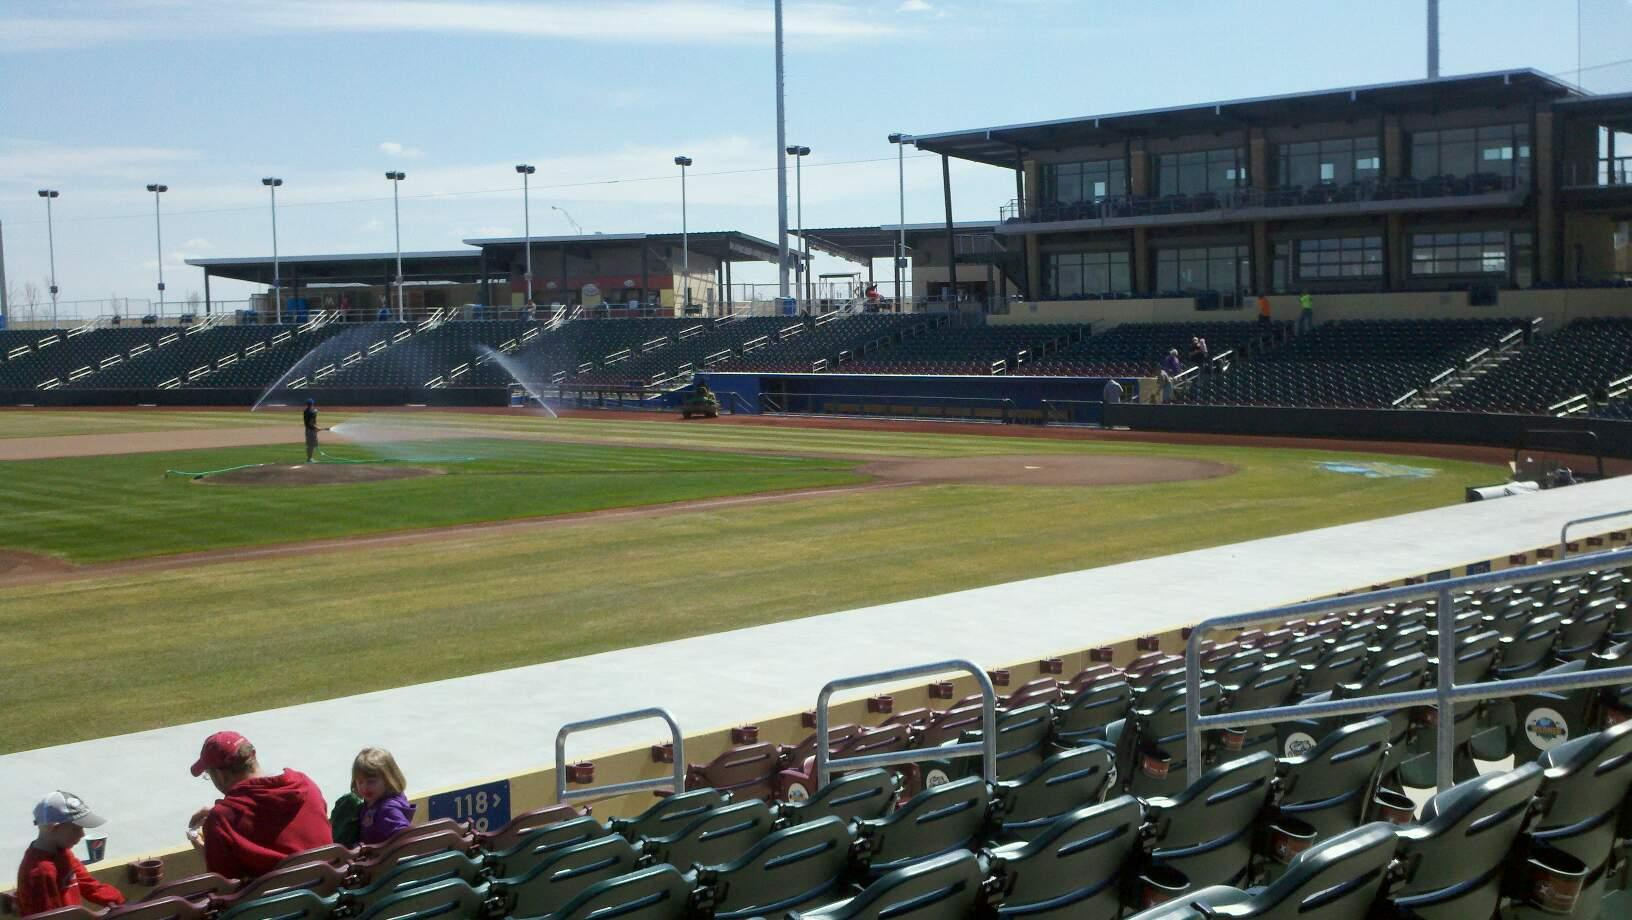 Werner Park Section 119 Row 14 Seat 9